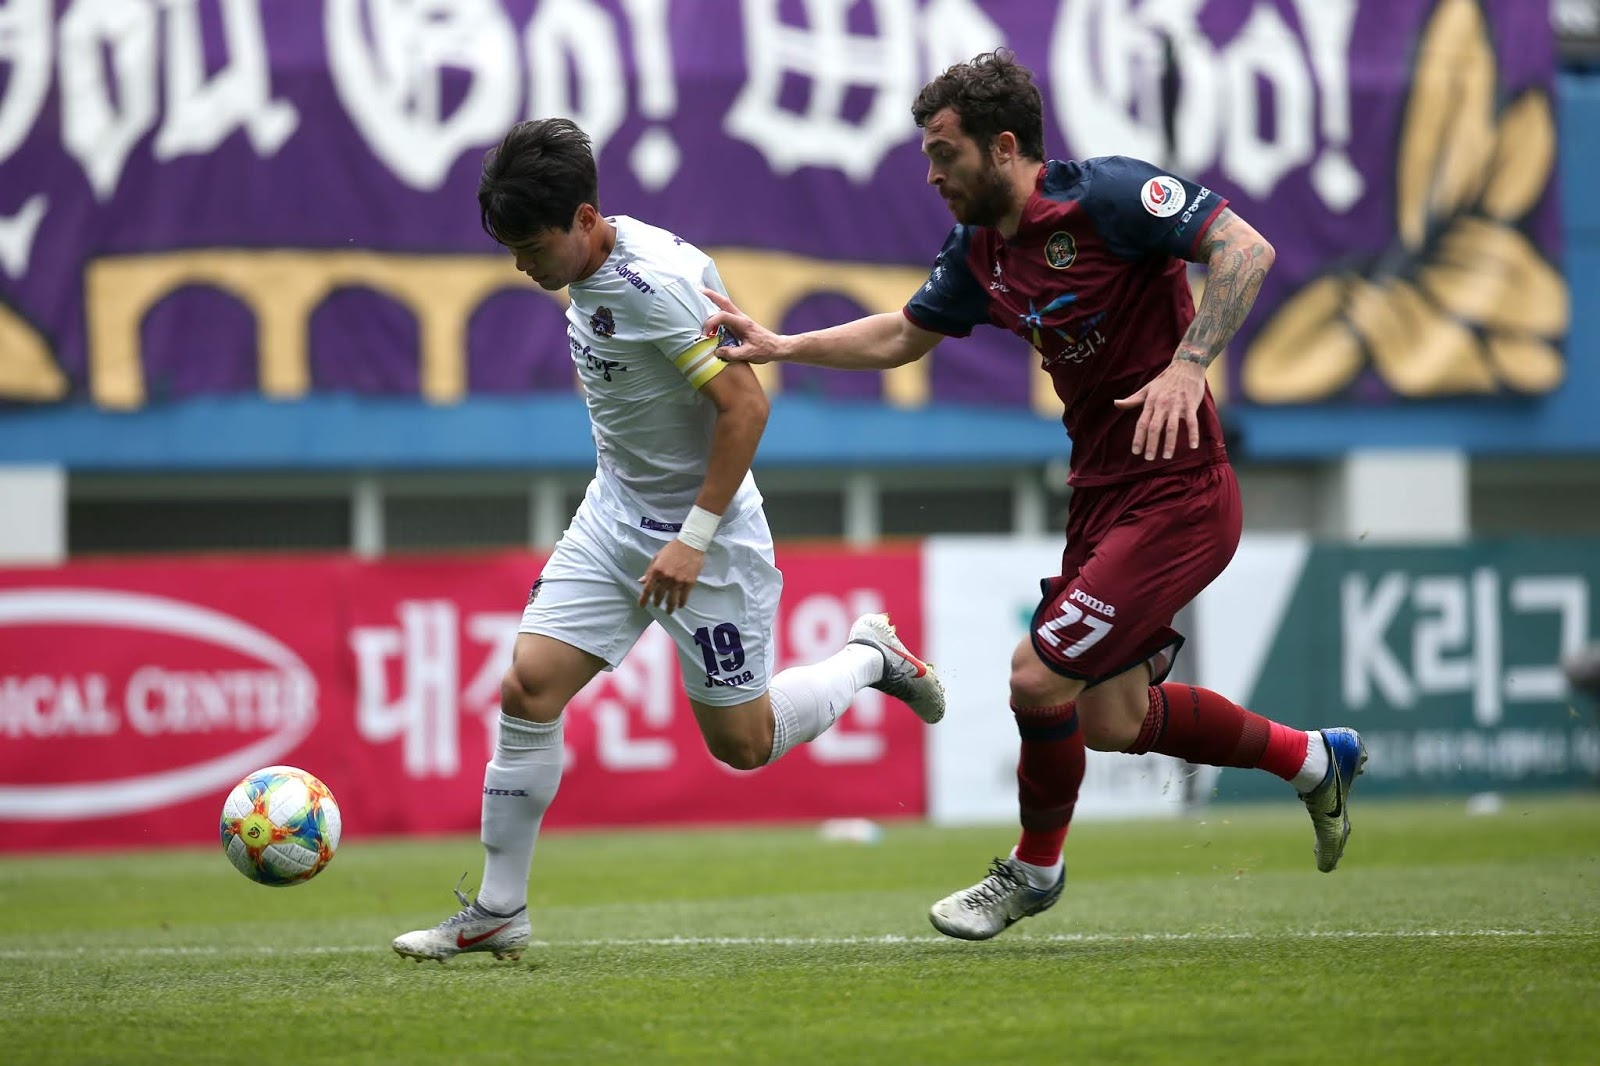 Preview: Daejeon Citizen vs FC Anyang K League 2 Round 35